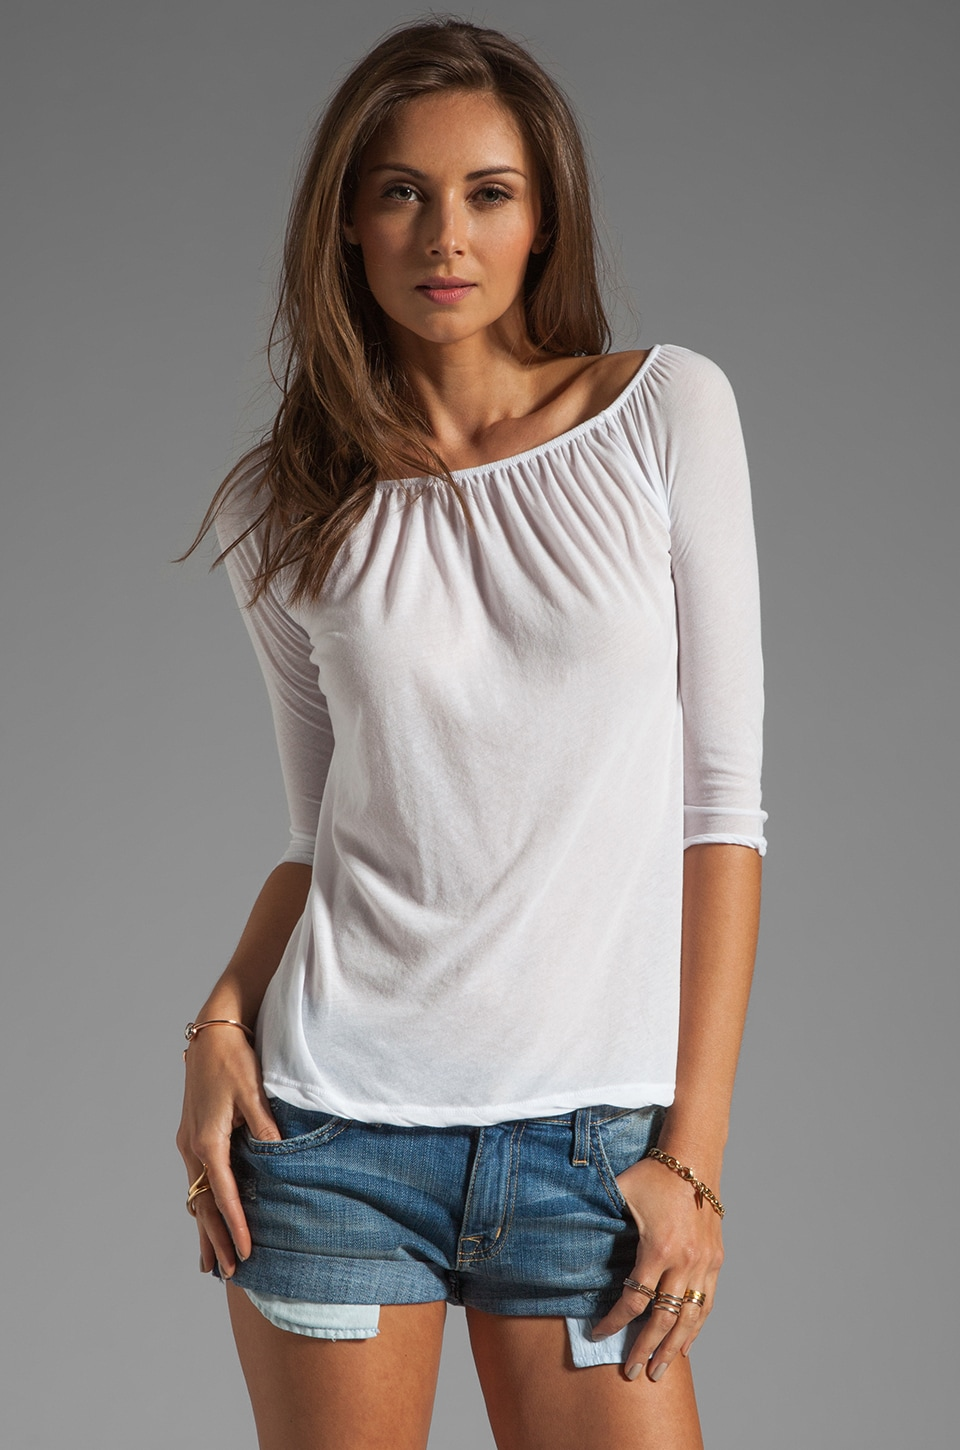 James Perse A Line Off the Shoulder Top in White